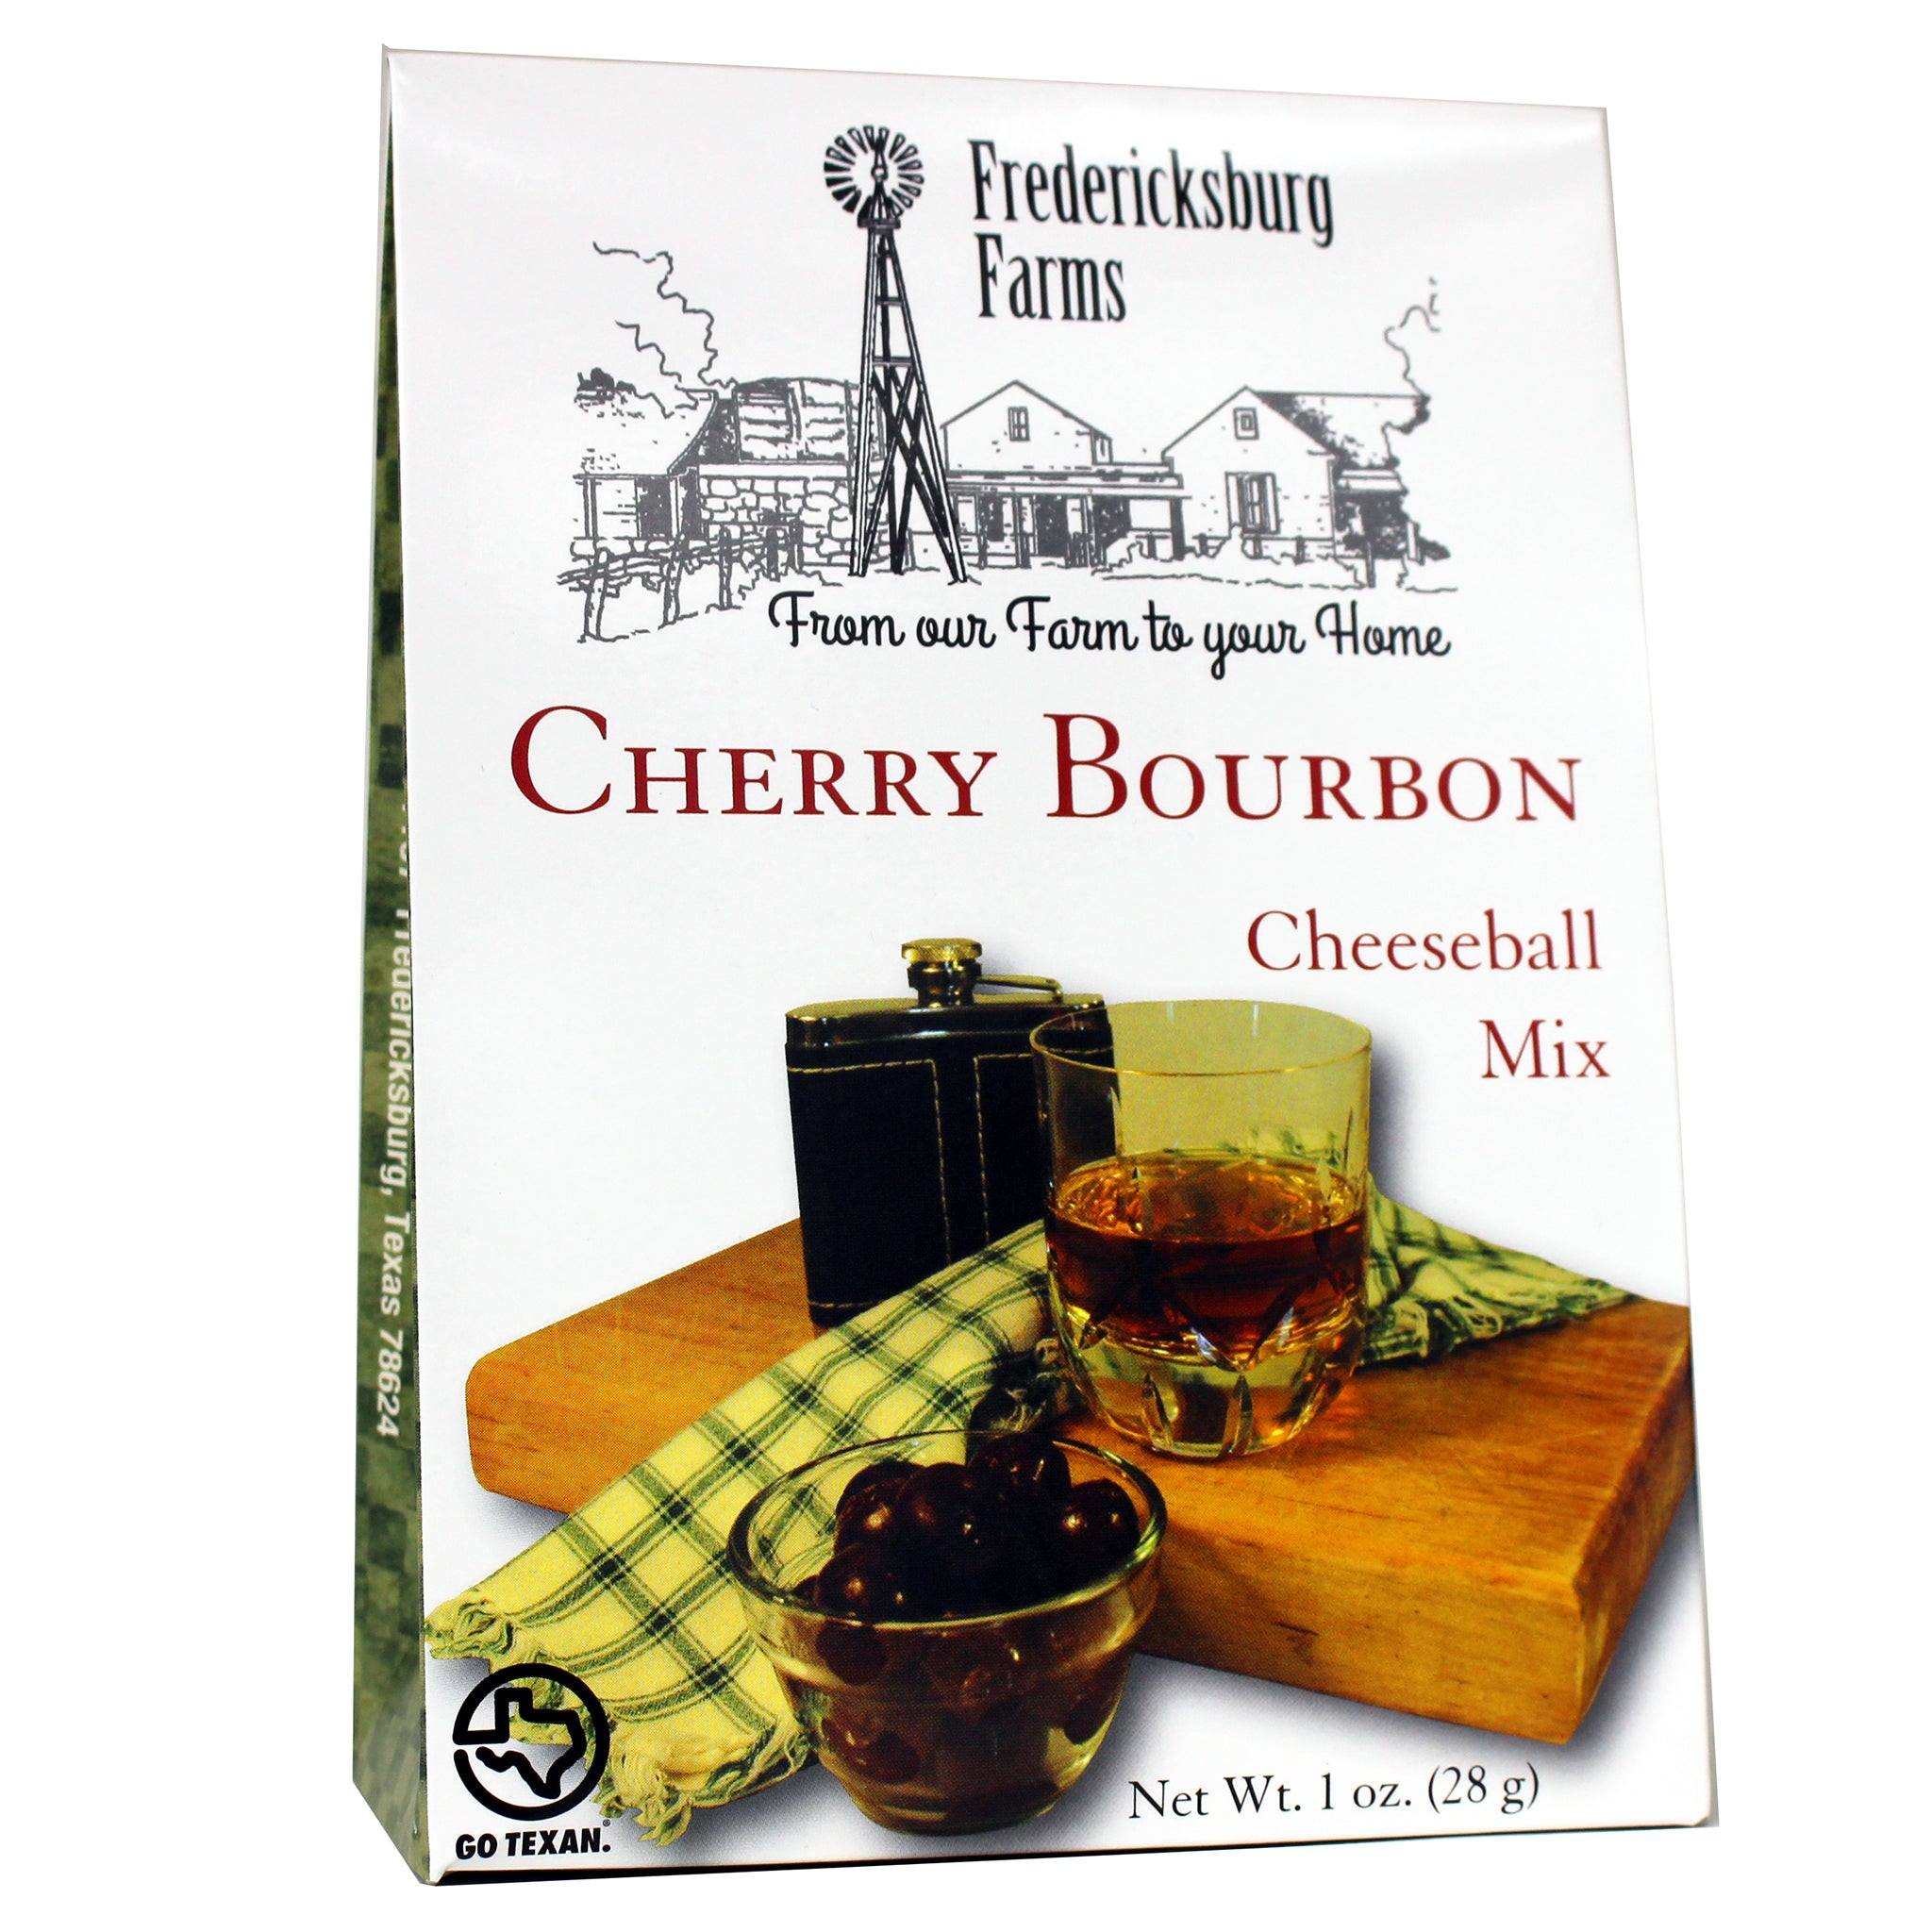 Cherry Bourbon Cheeseball Mix - Fredericksburg Farms